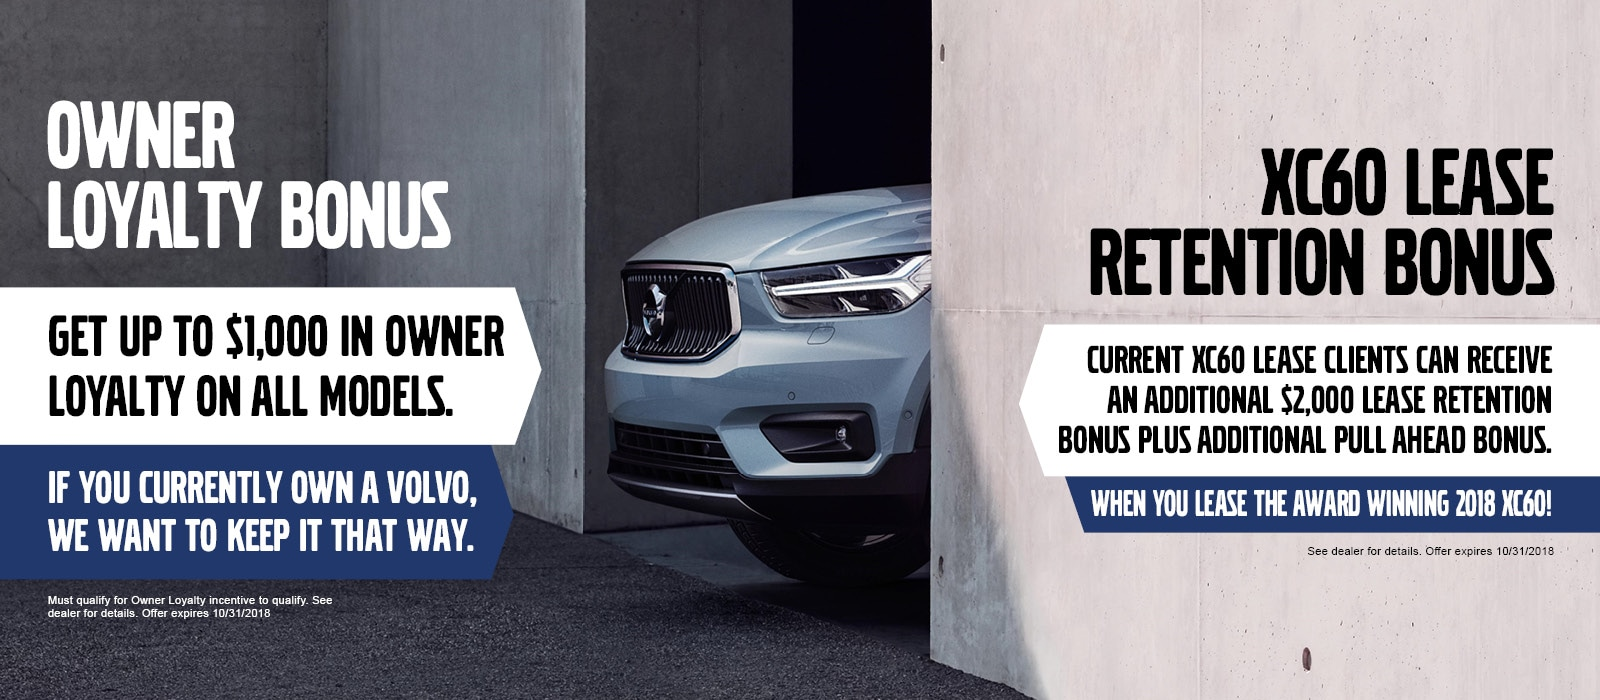 Volvo Cars Of Naples New And Used Volvo Dealership Naples FL - Car show naples fl 2018